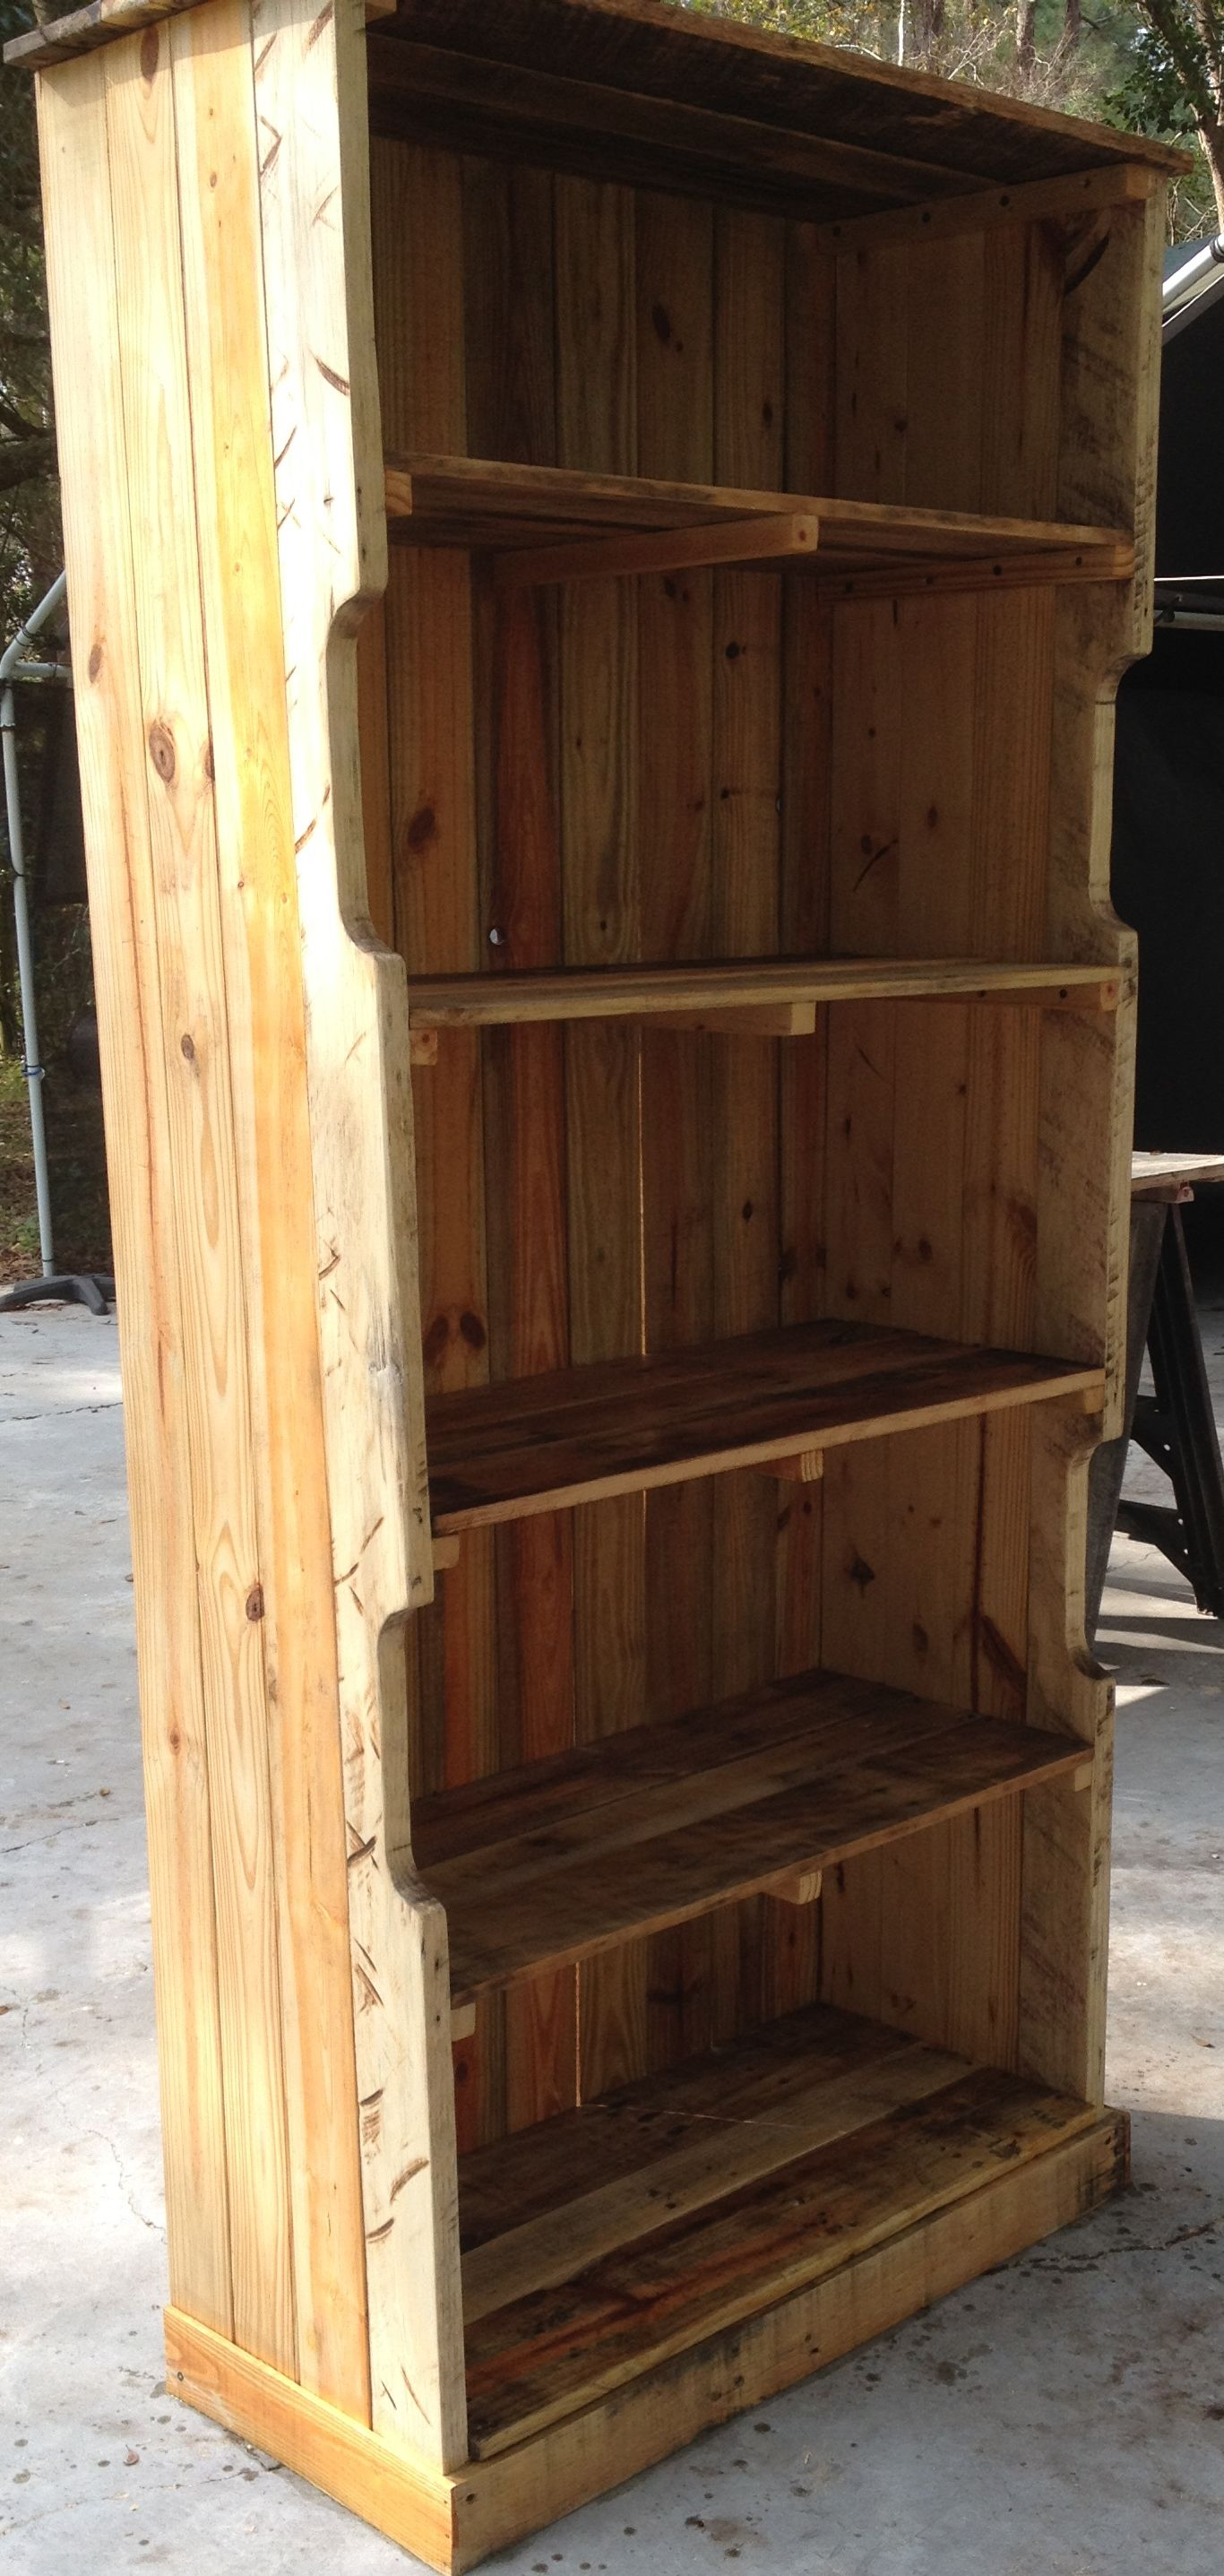 handcrafted pallet wood bookshelf, beautiful and green!